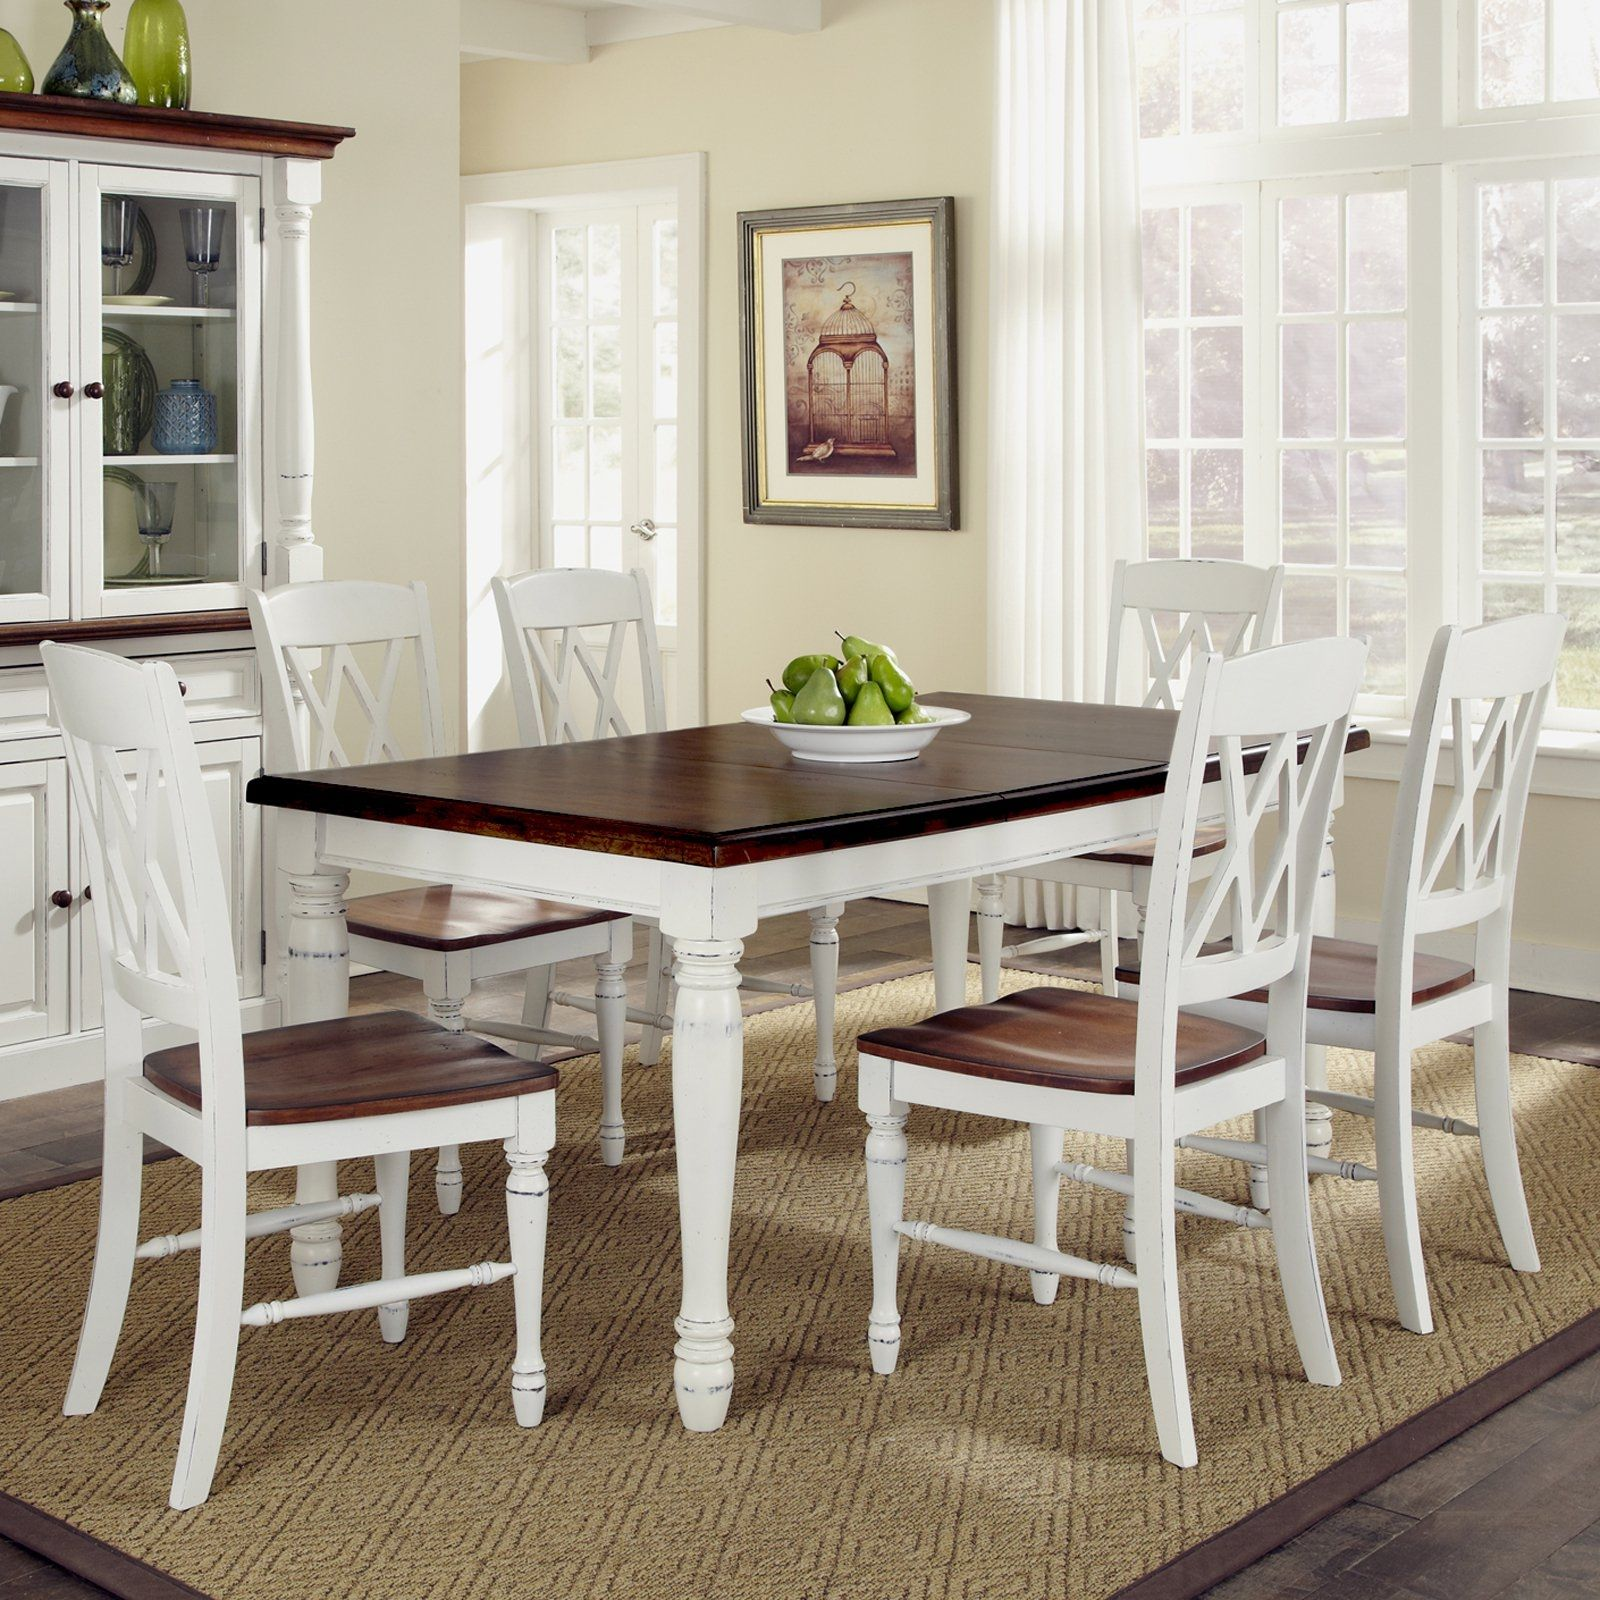 Small White Kitchen Table And Chairs Set | http ...